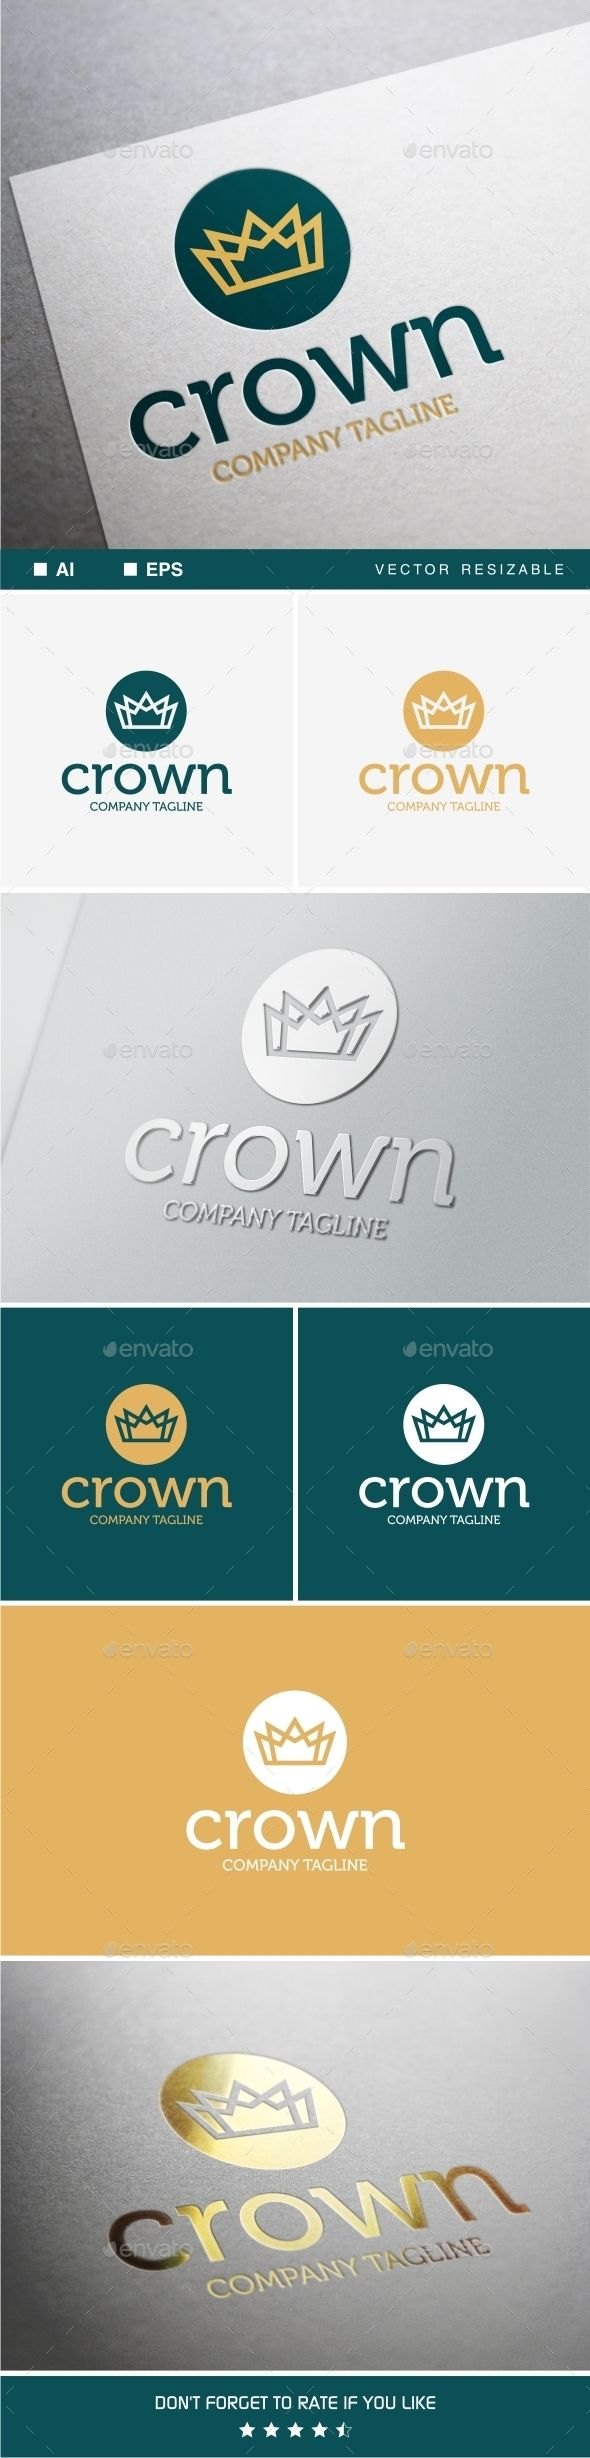 Crown Logo Template #design Download: http://graphicriver.net/item/crown-logo-template/9904852?ref=ksioks